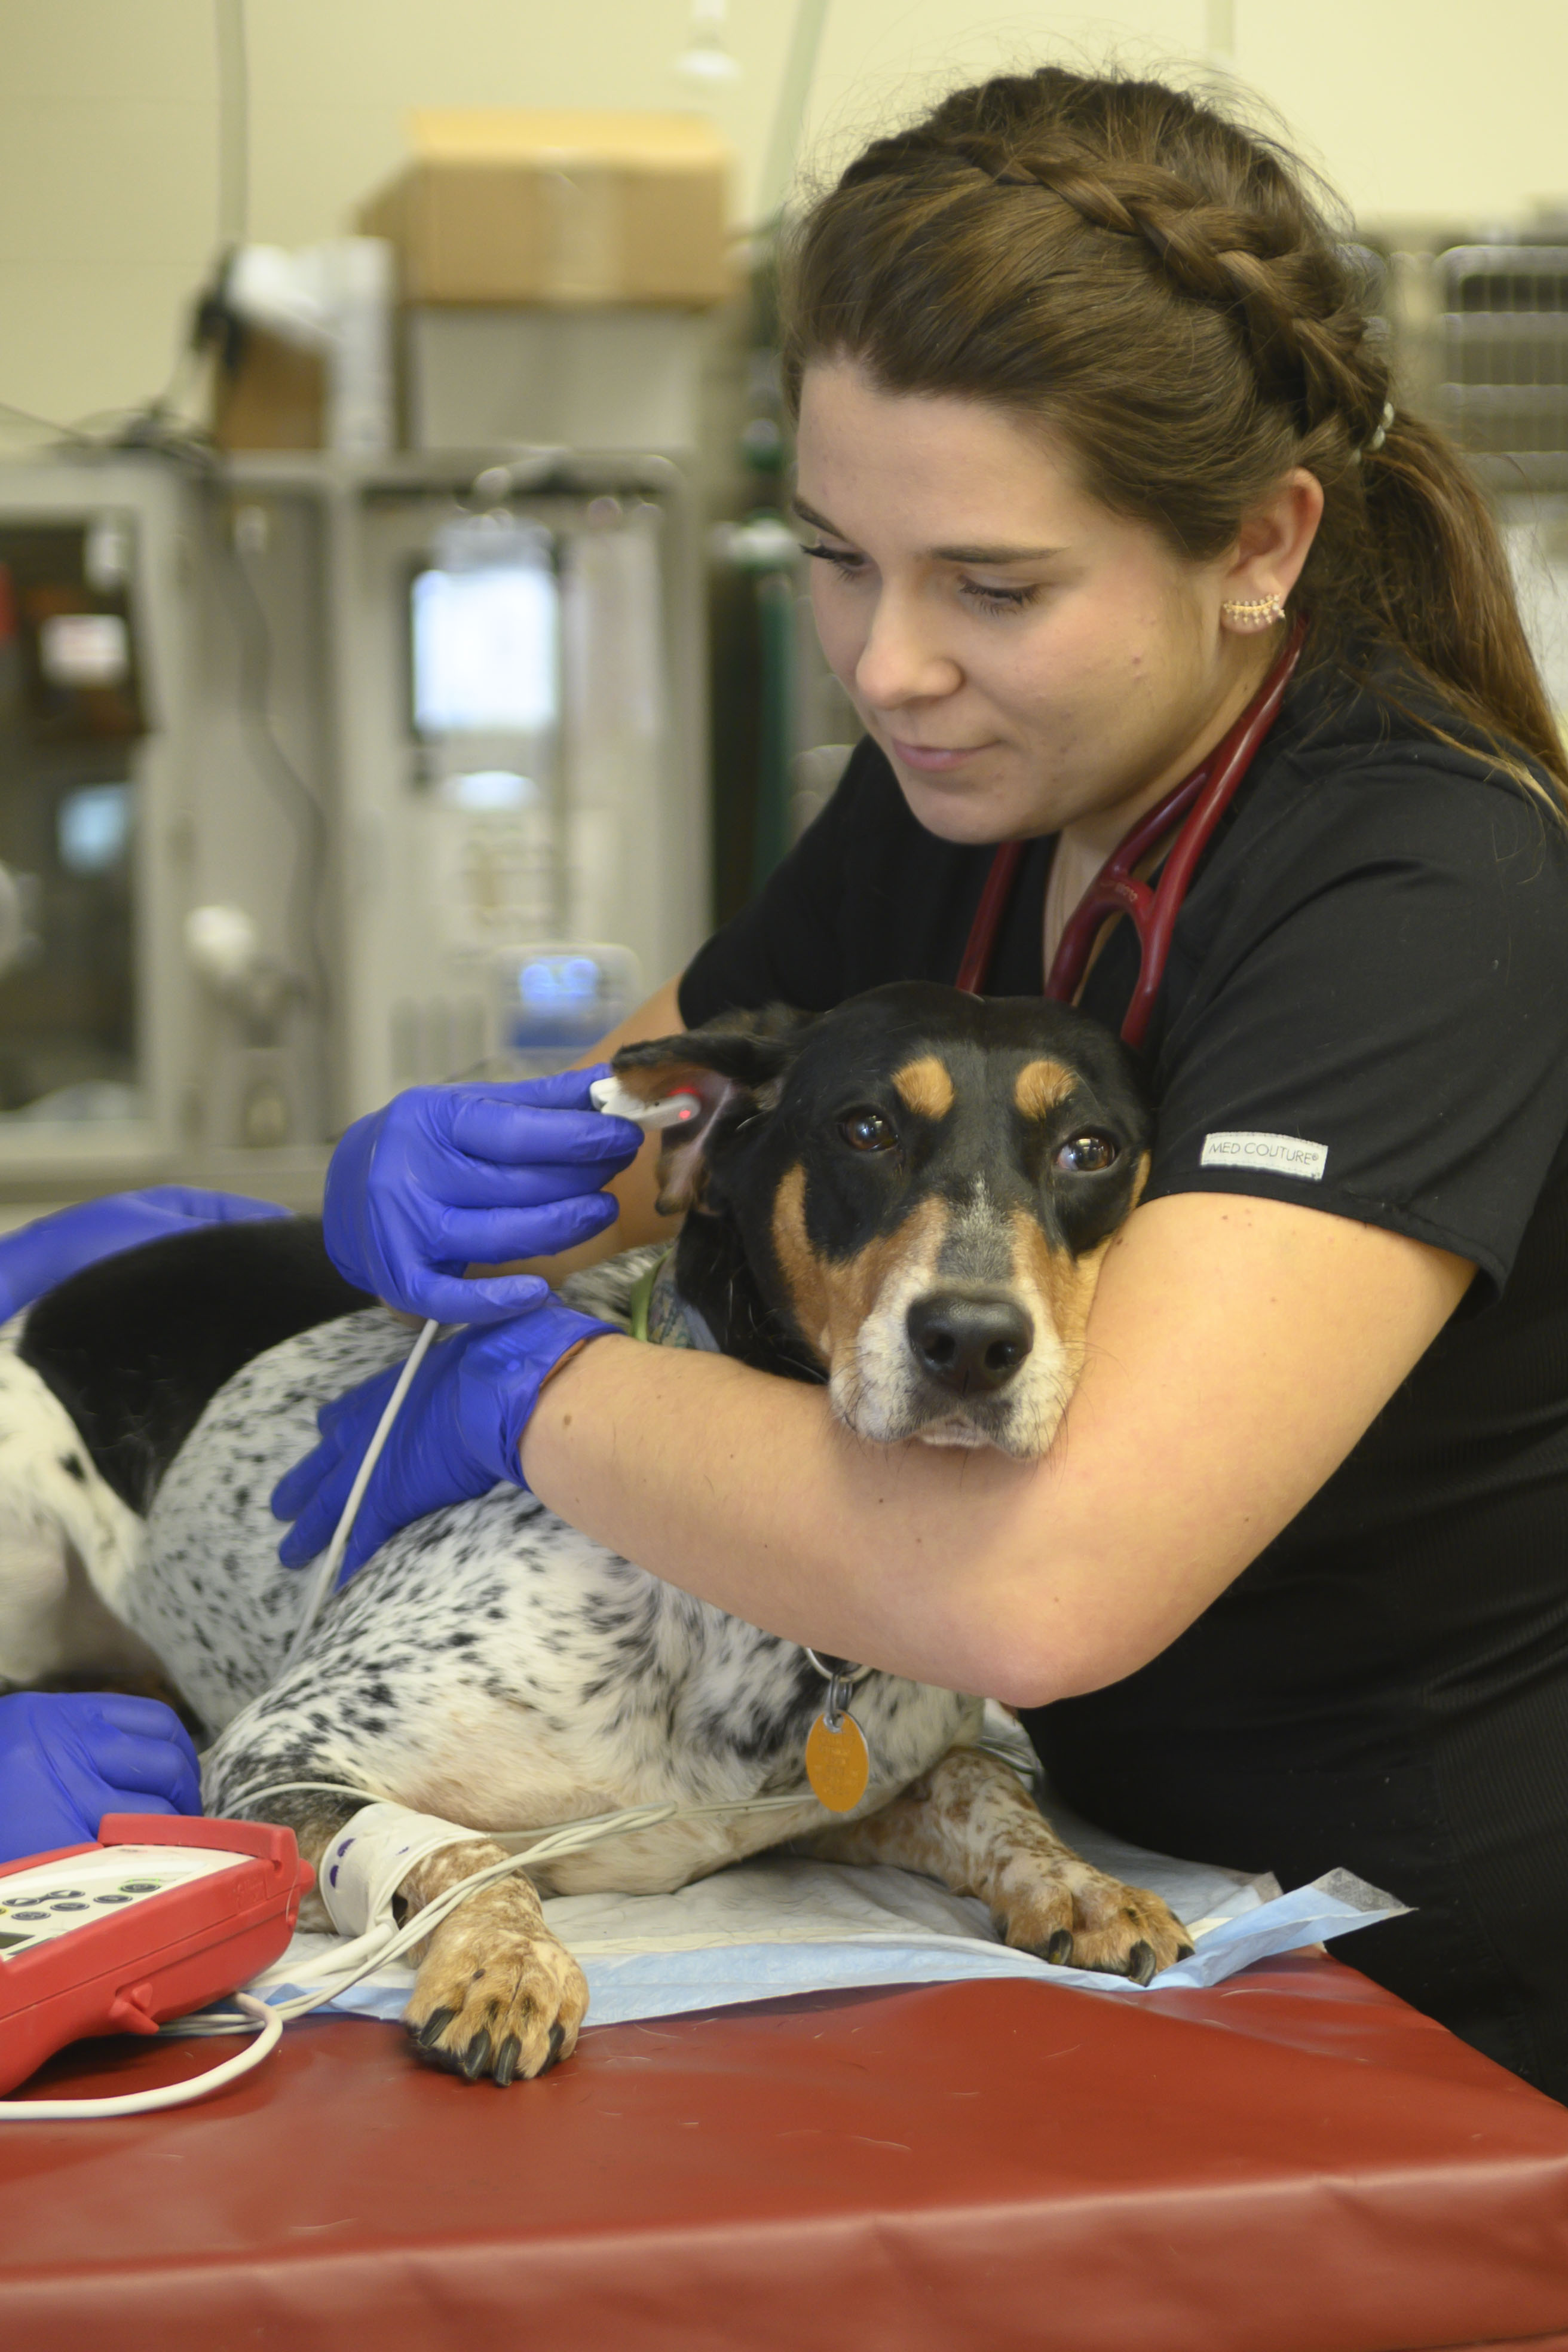 A veterinary student comforts a dog during an exam